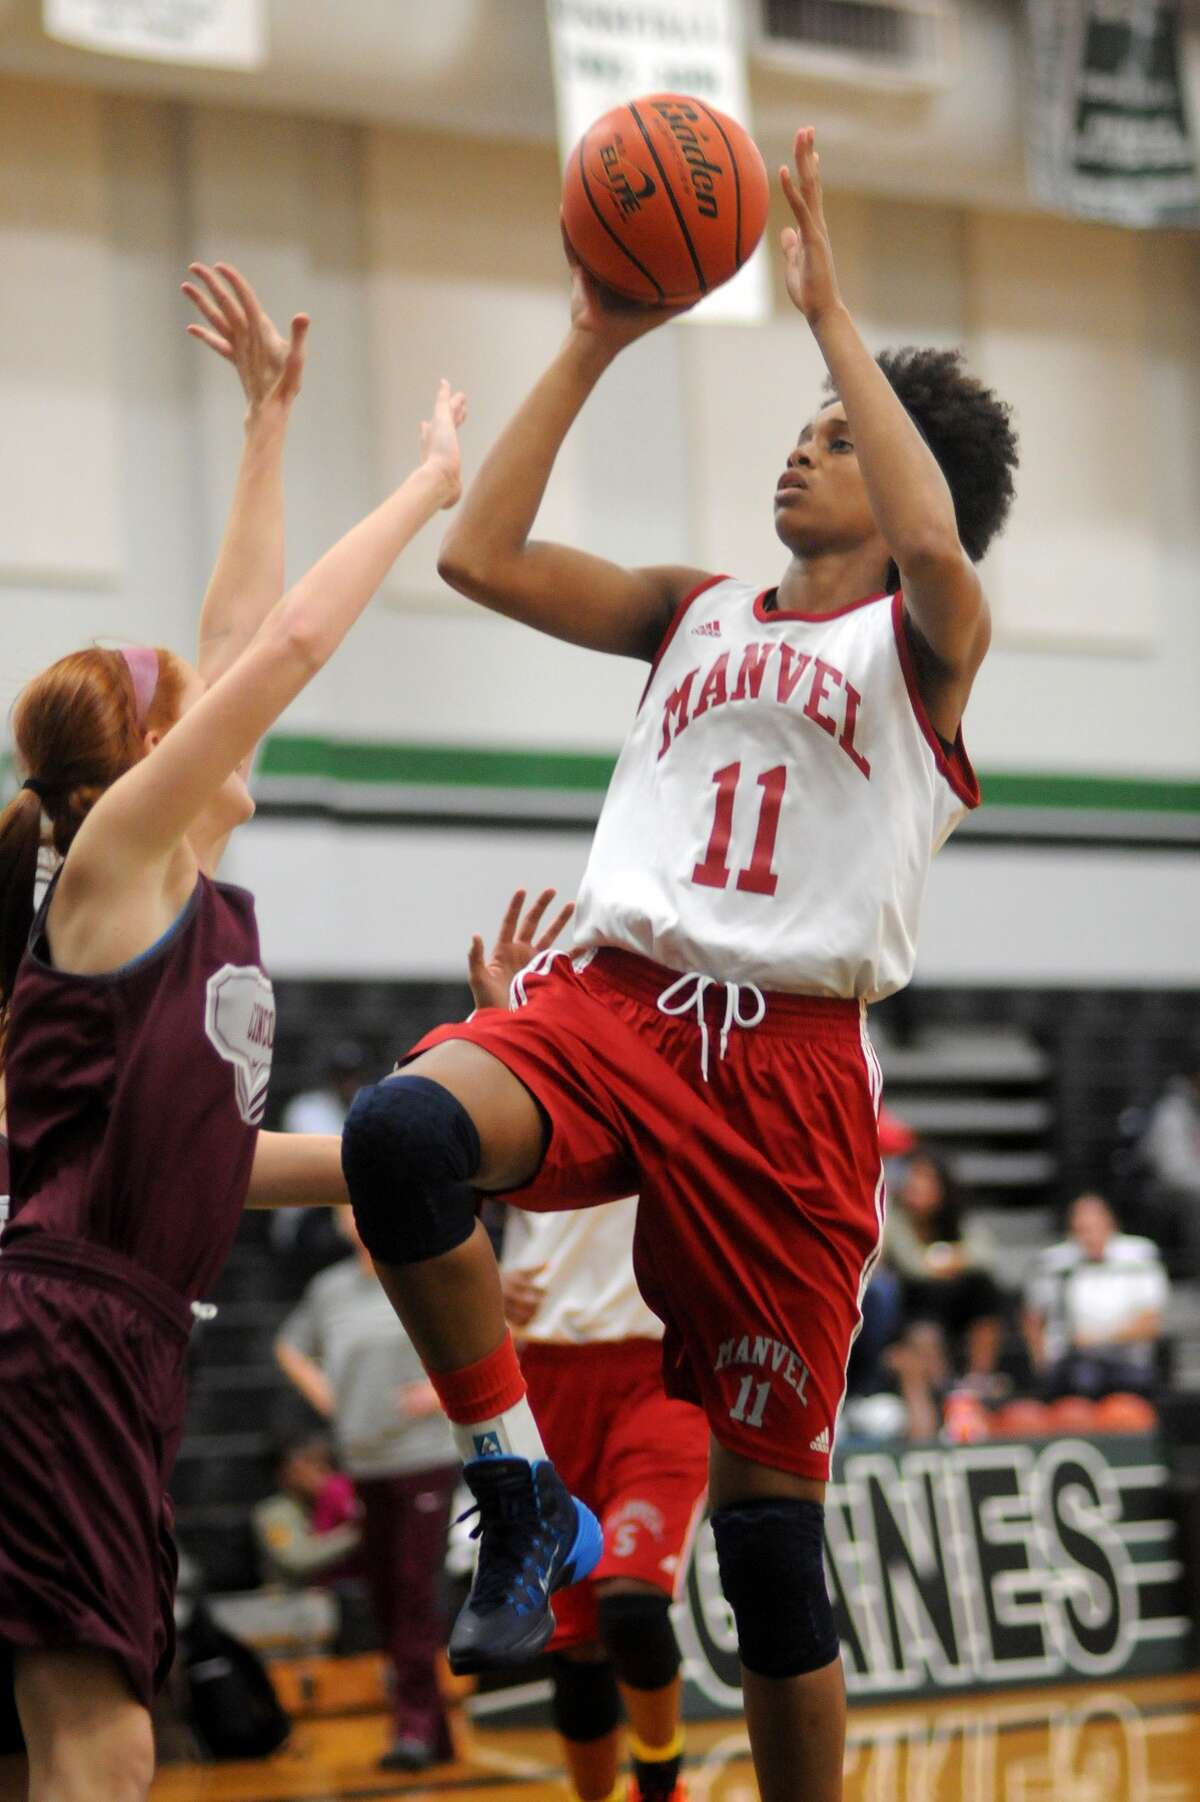 Manvel senior forward Brianna Turner (11) is one of the nation's best juniors and a three-time international gold medal winner with USA Basketball.